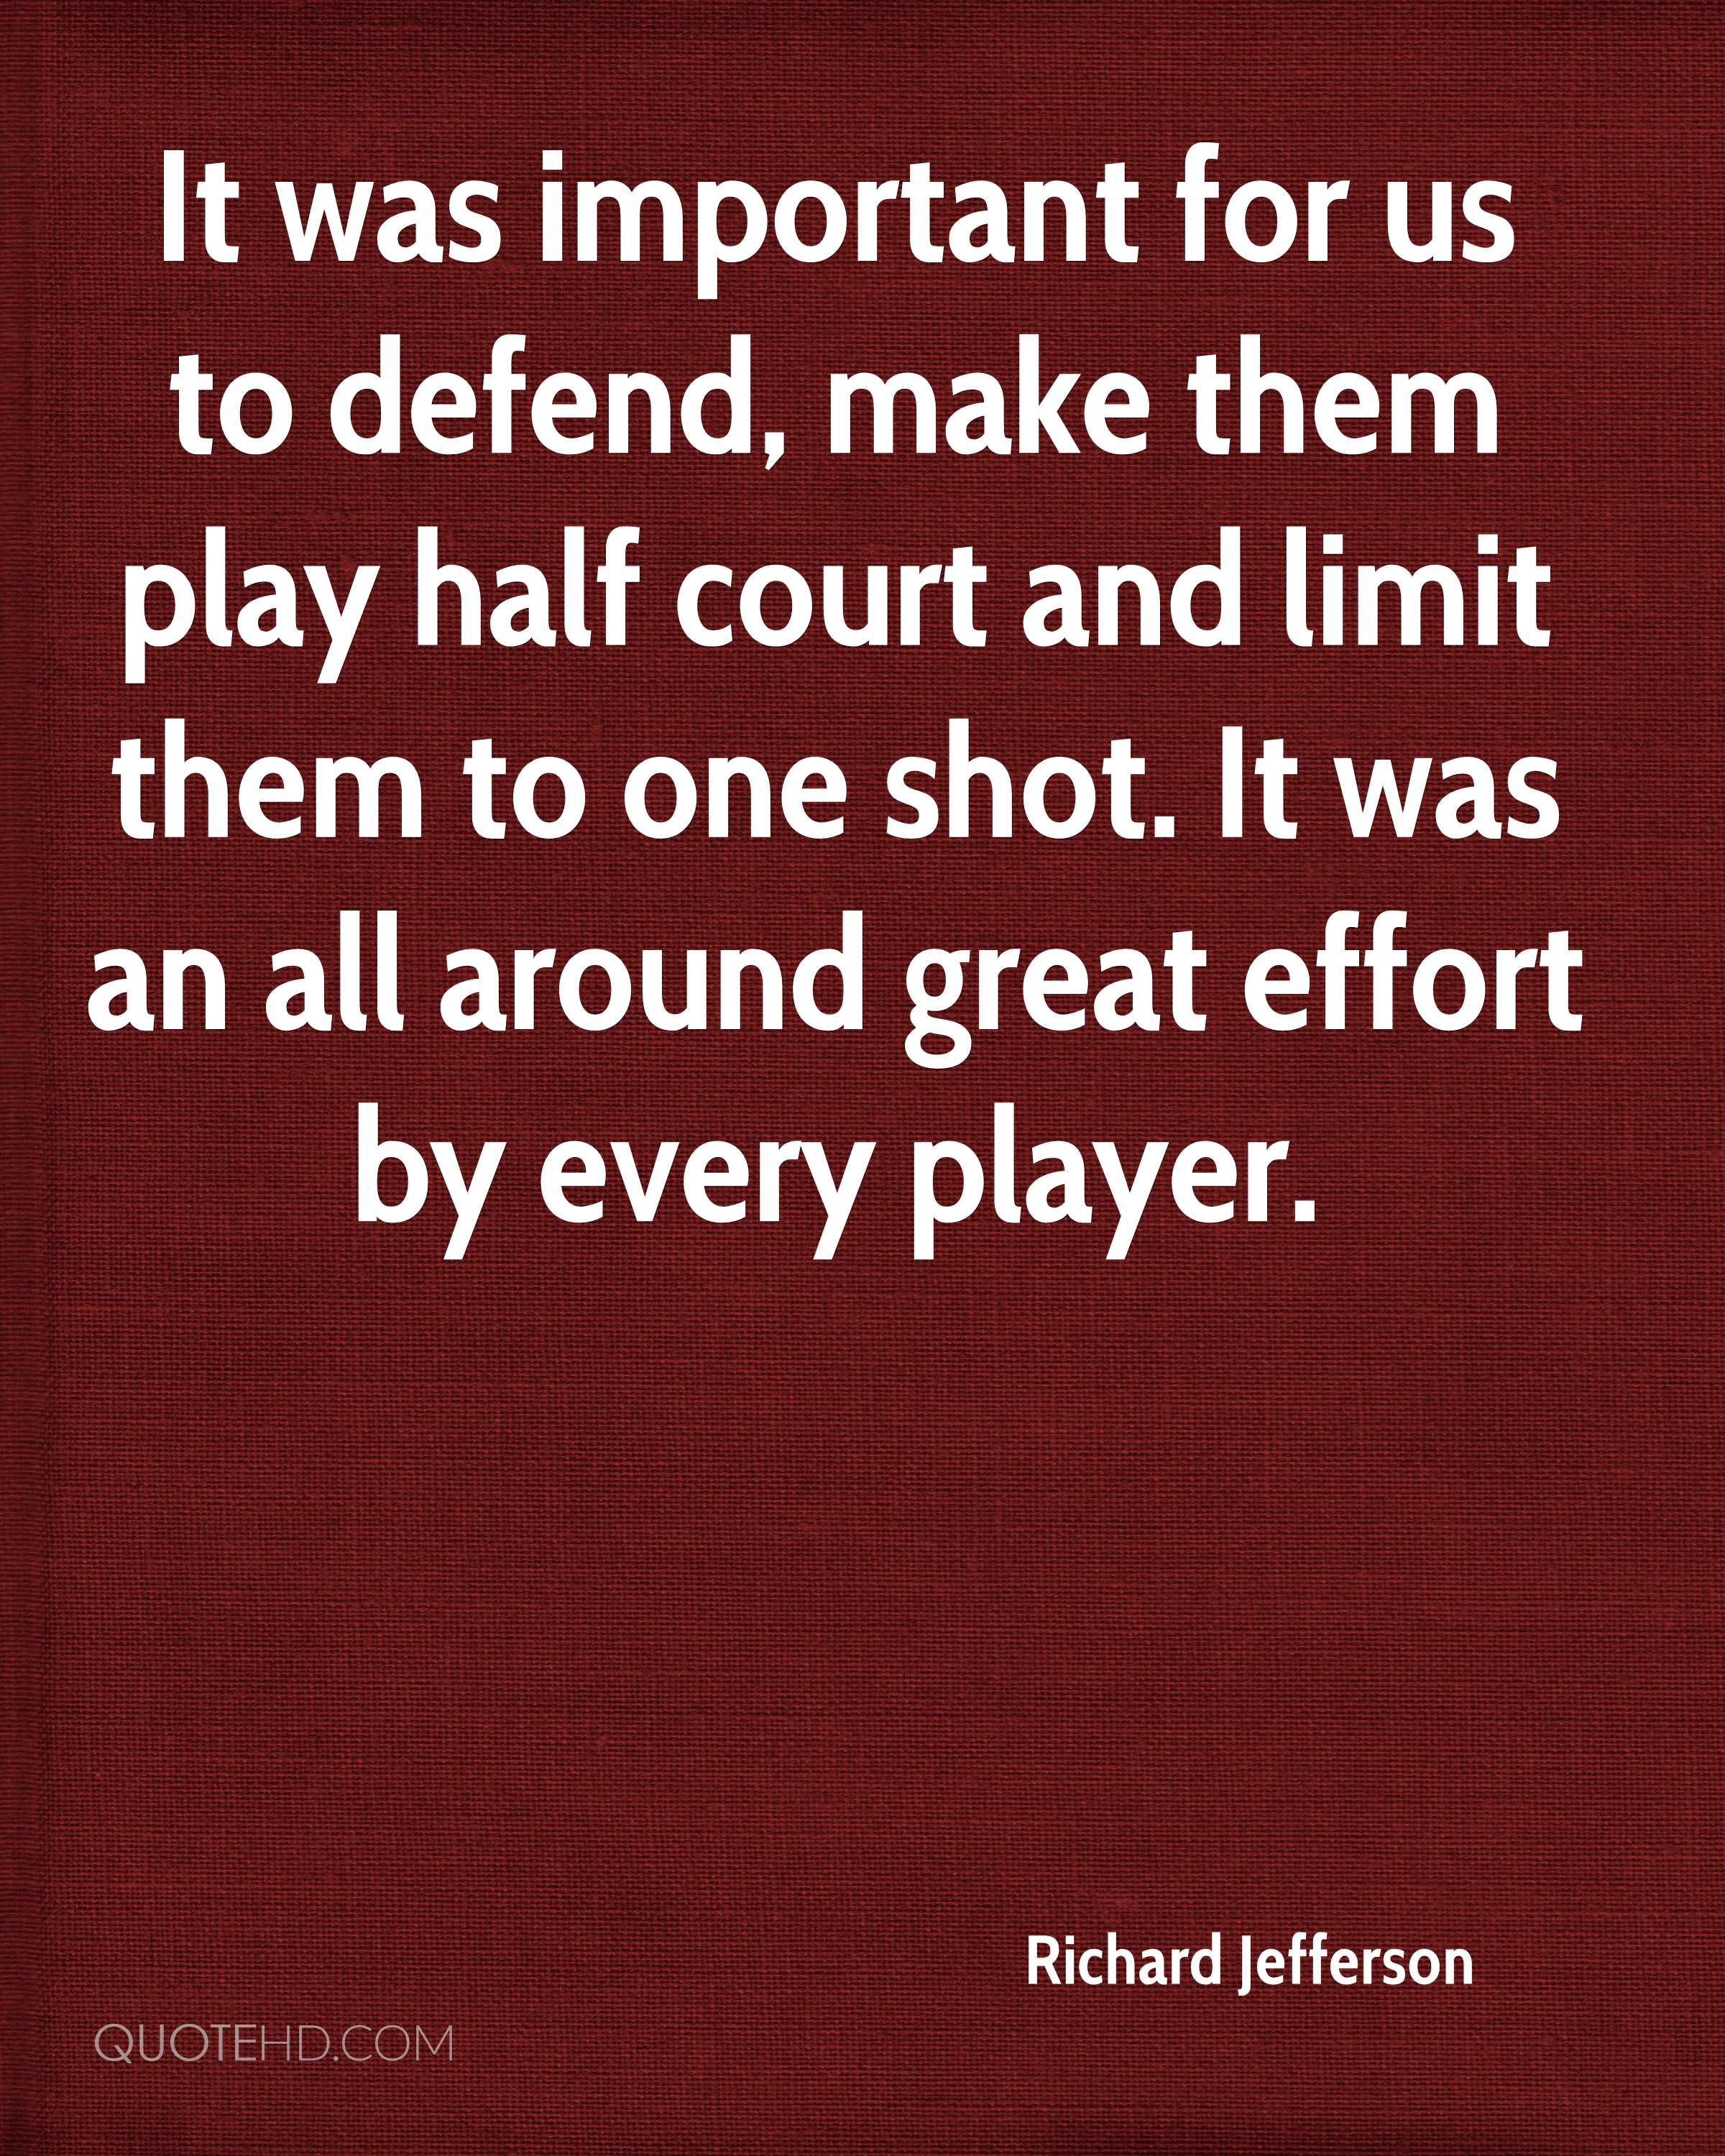 It was important for us to defend, make them play half court and limit them to one shot. It was an all around great effort by every player.